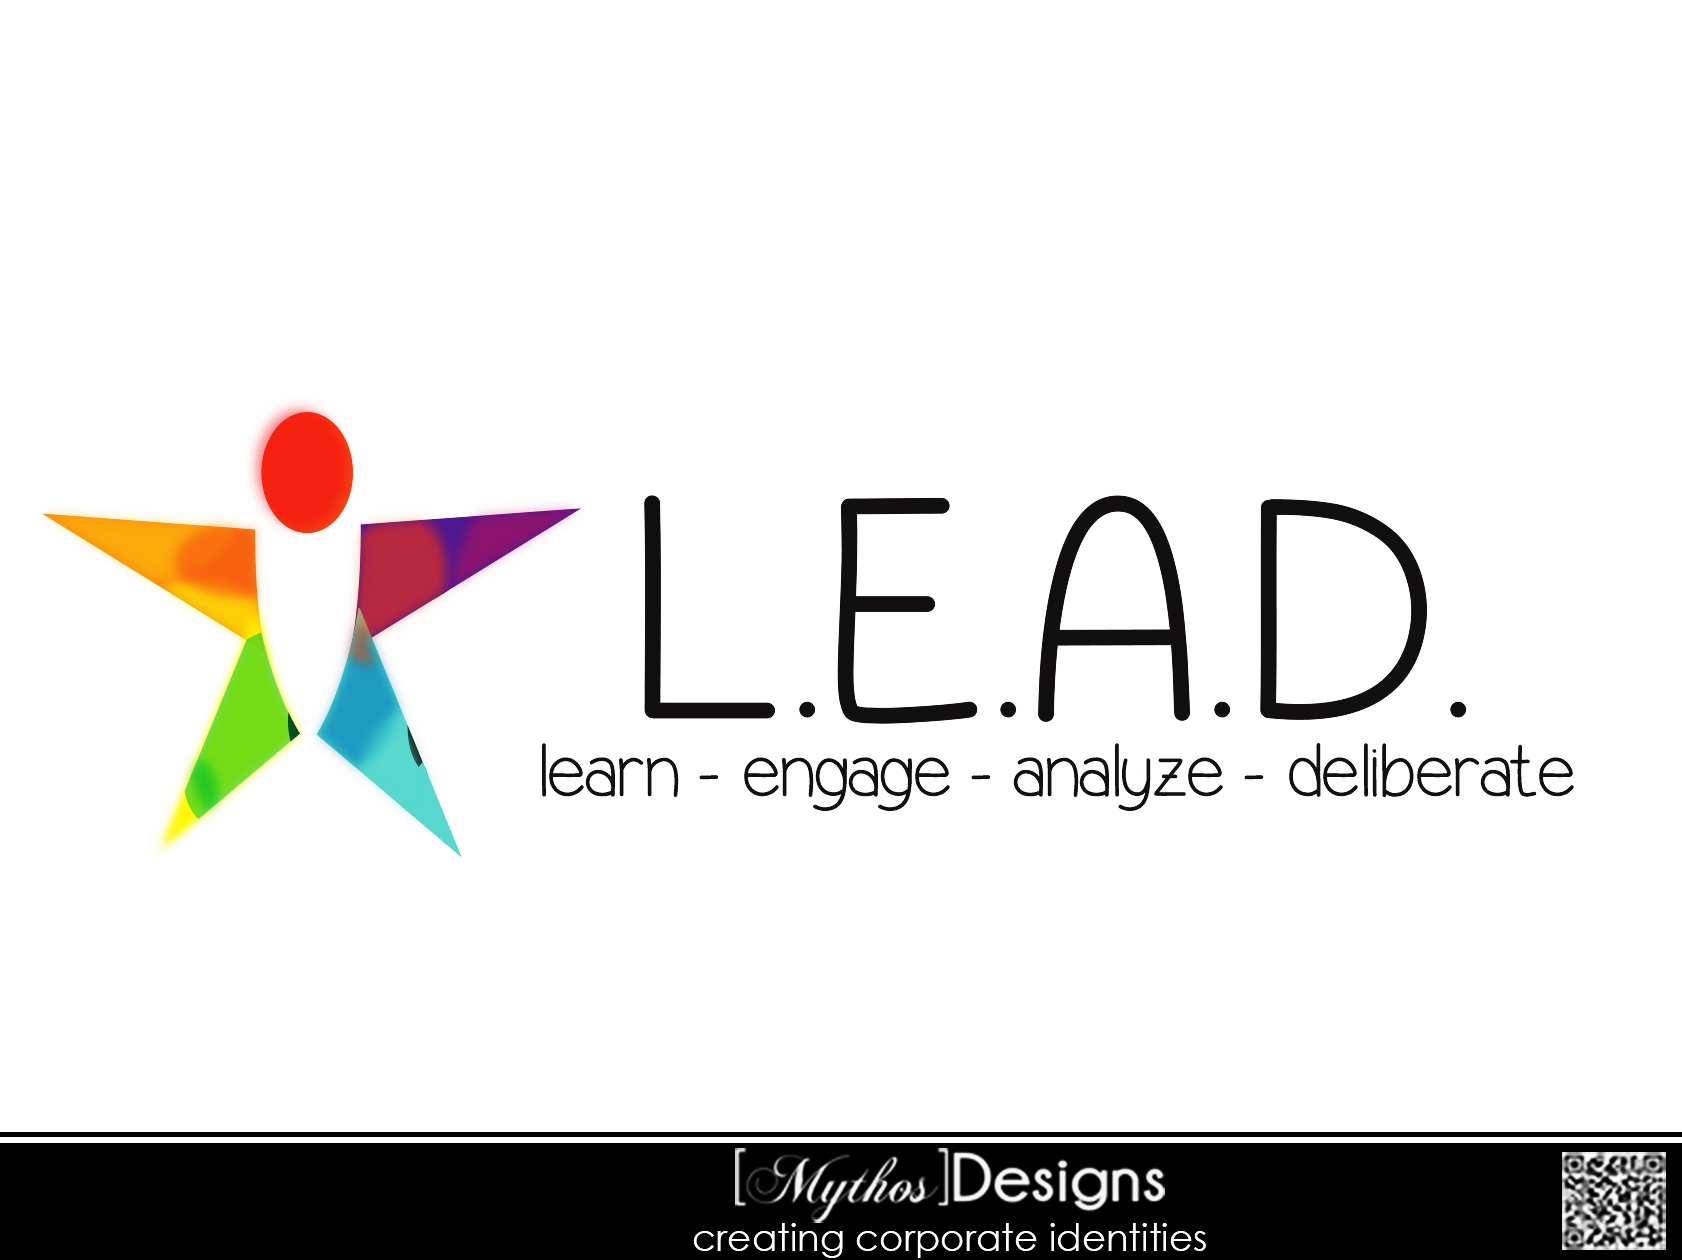 Logo Design by Mythos Designs - Entry No. 61 in the Logo Design Contest L.E.A.D. (learn, engage, analyze, deliberate) Logo Design.